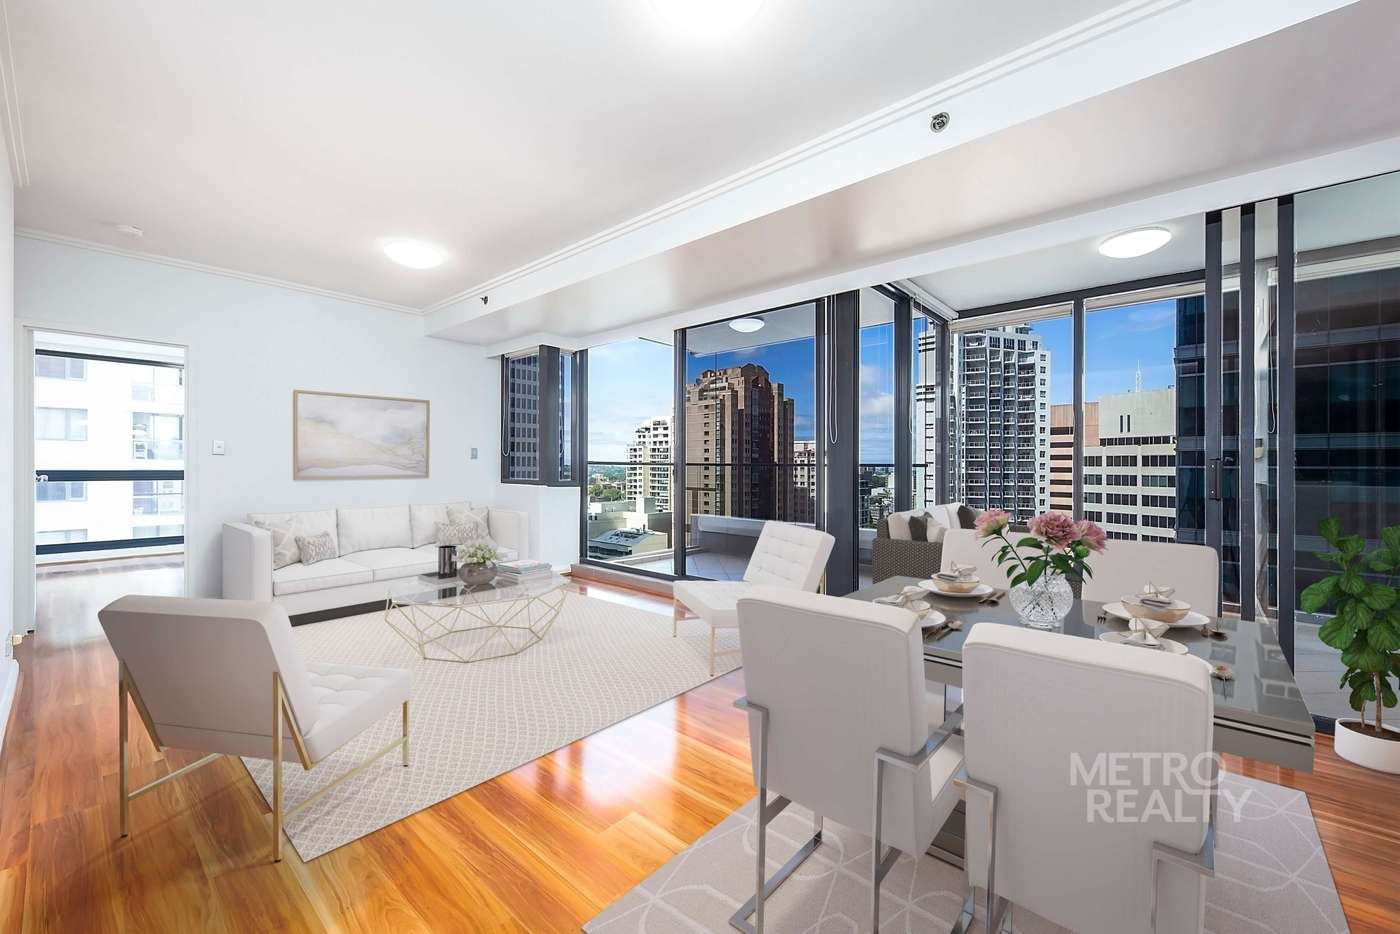 Main view of Homely apartment listing, 3402/91 Liverpool Street, Sydney NSW 2000